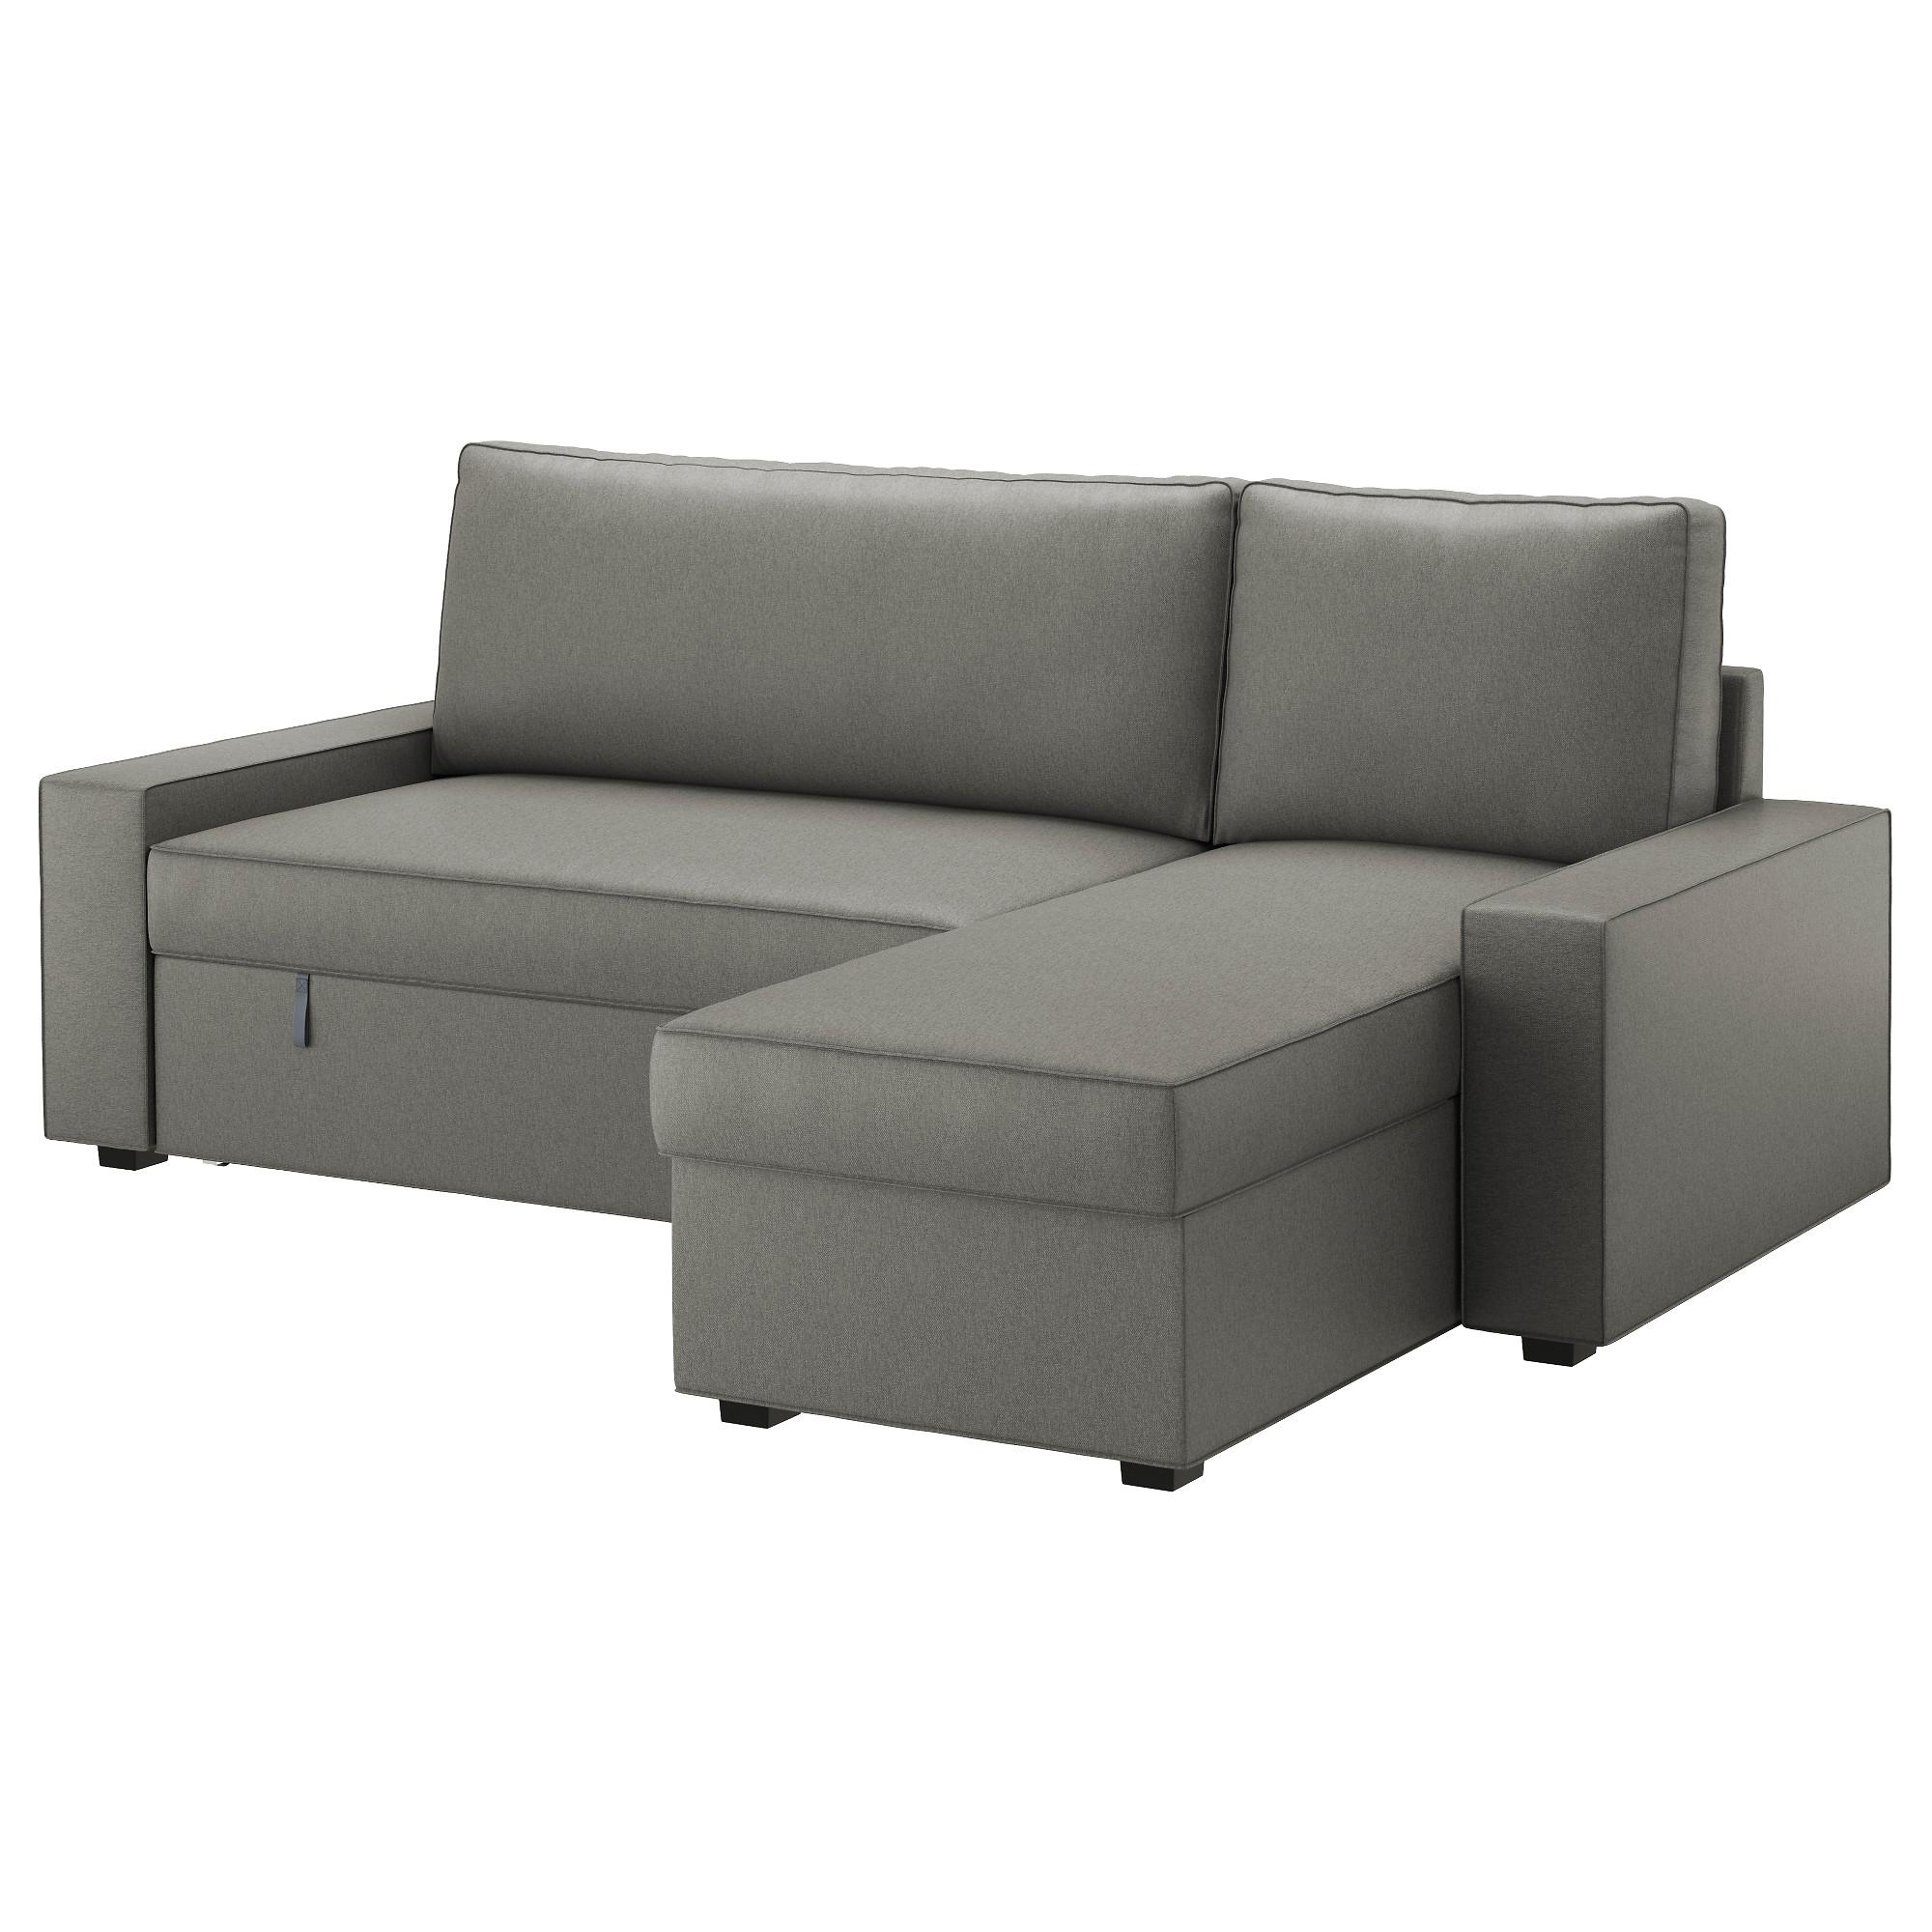 20 best ideas chaise longue sofa beds sofa ideas for Argos chaise longue sofa bed